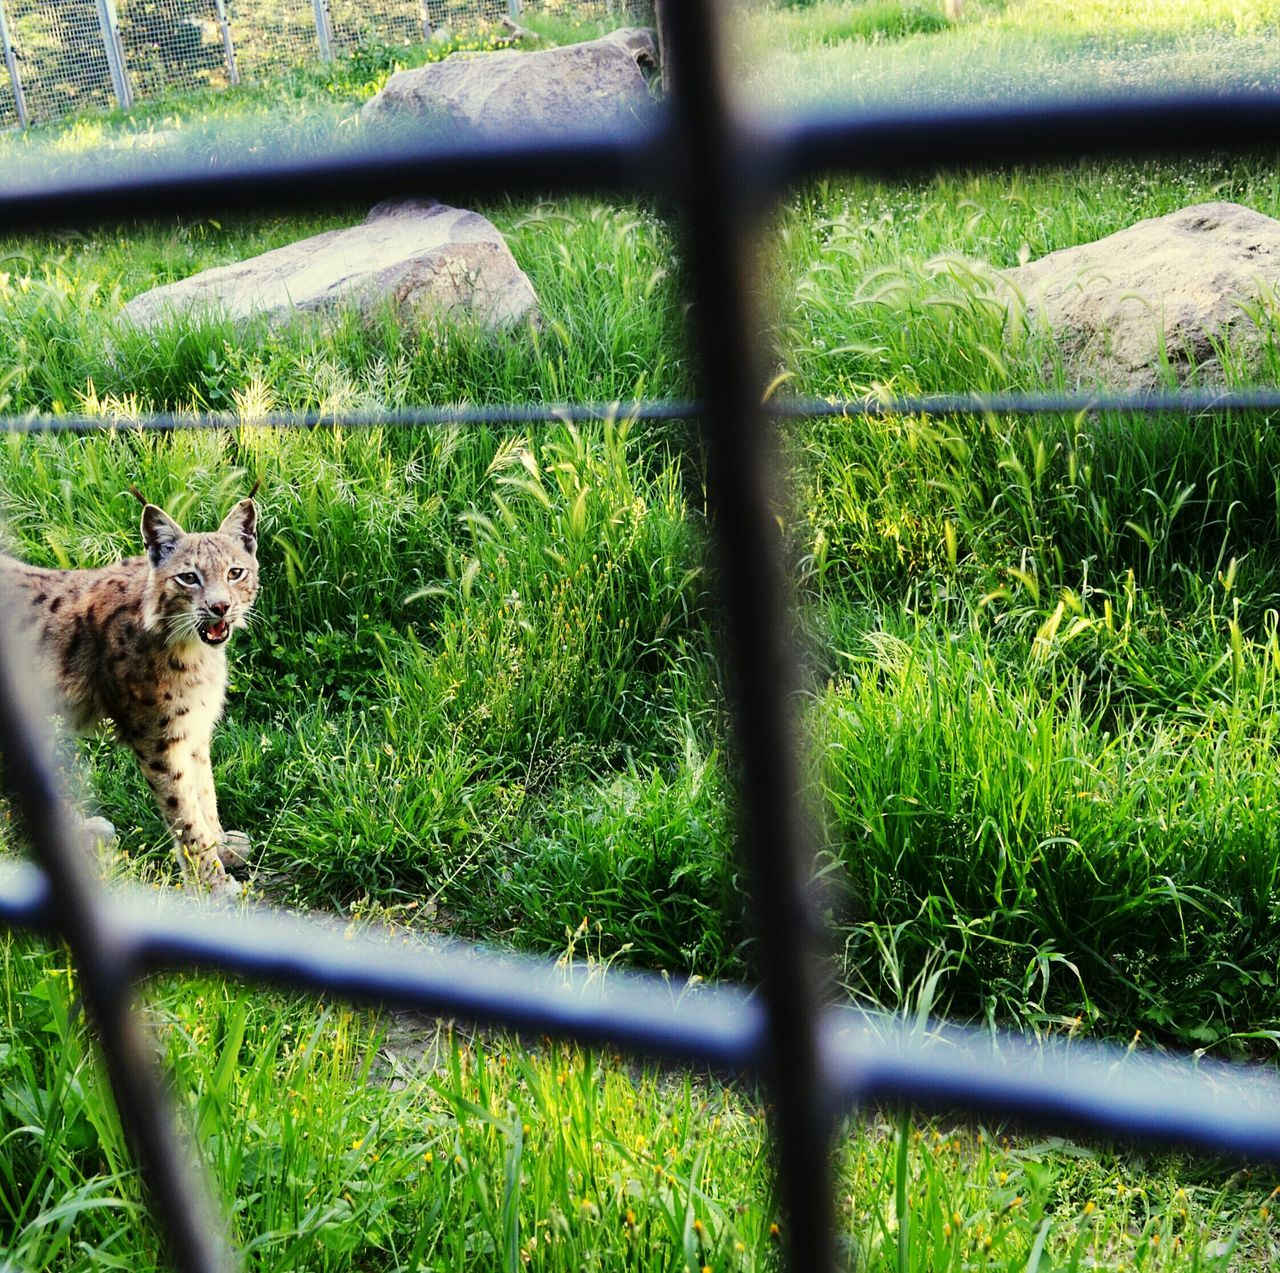 High Angle View Of Bobcat Walking On Grass In Cage